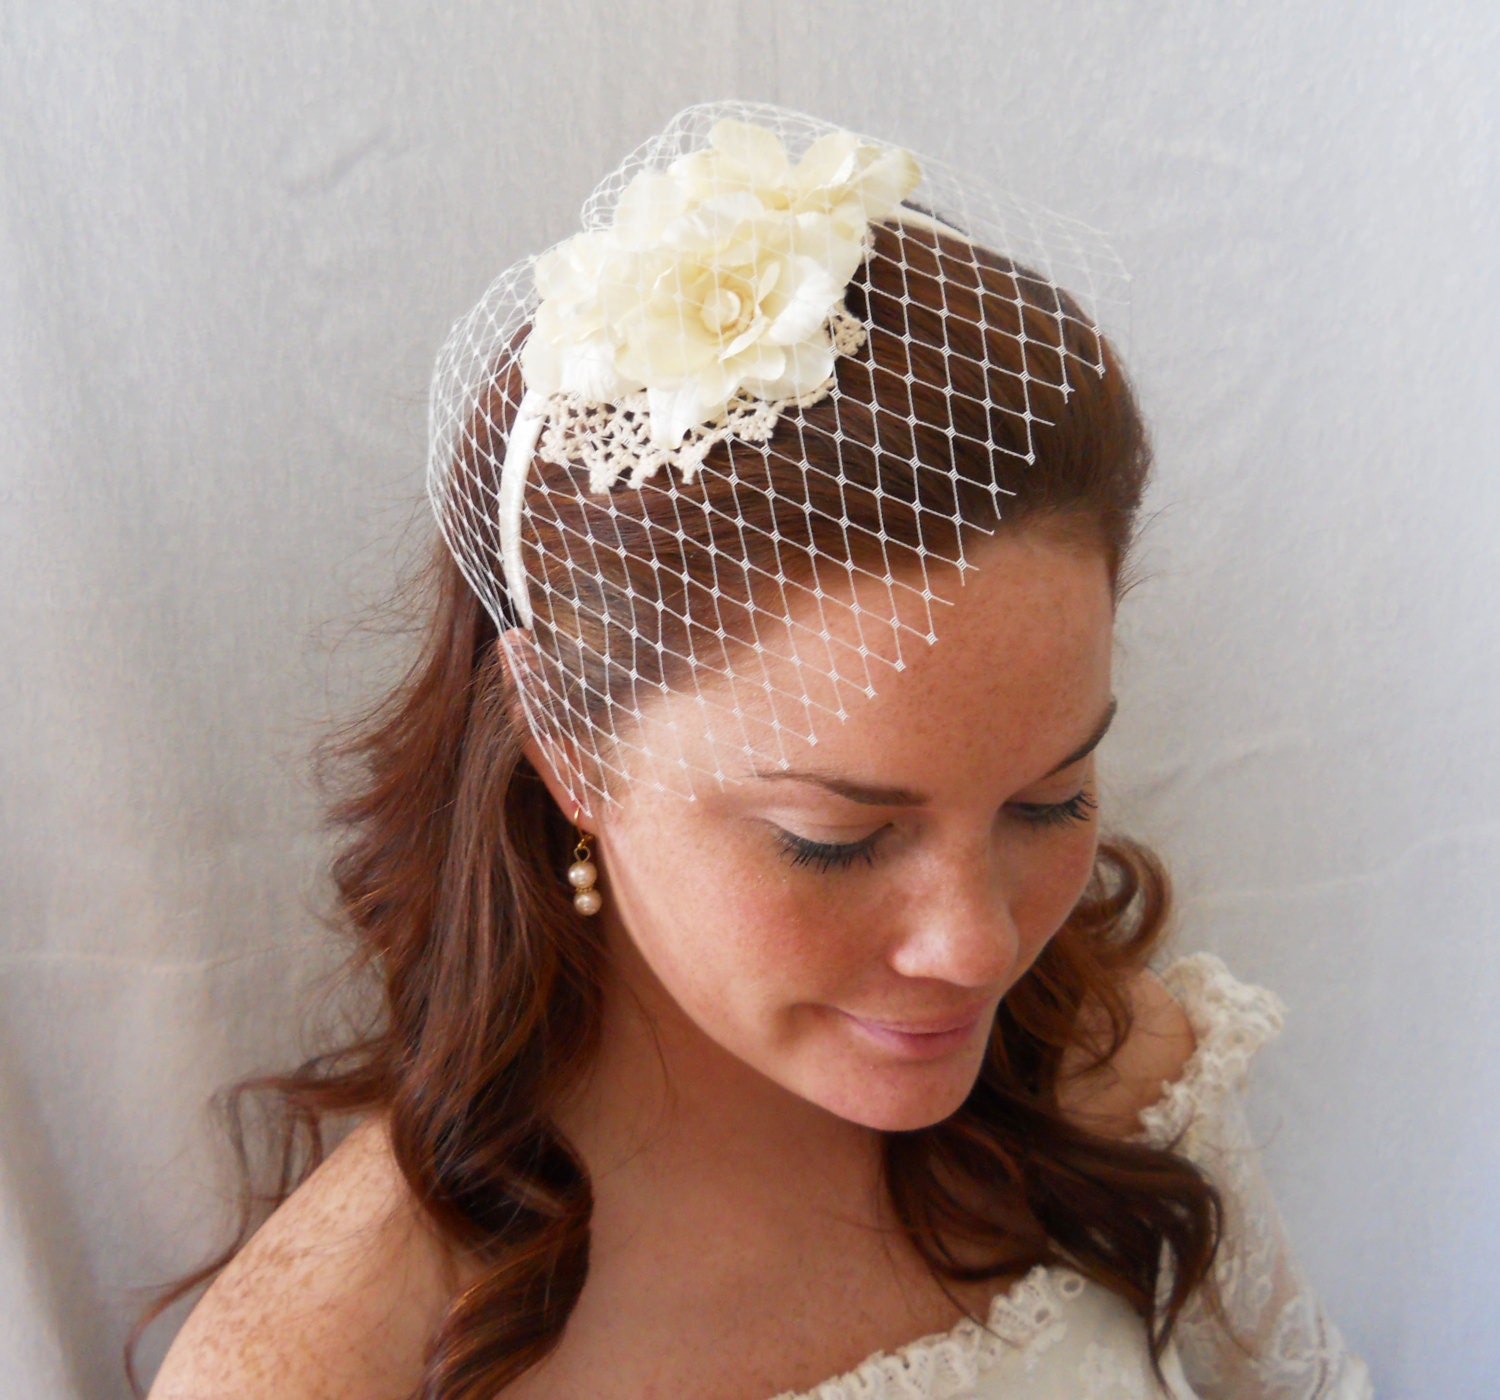 Wedding Hairstyles With Headband And Veil: Bridal Headpiece Bridal Headband With Veil By PearlyJaneBridal